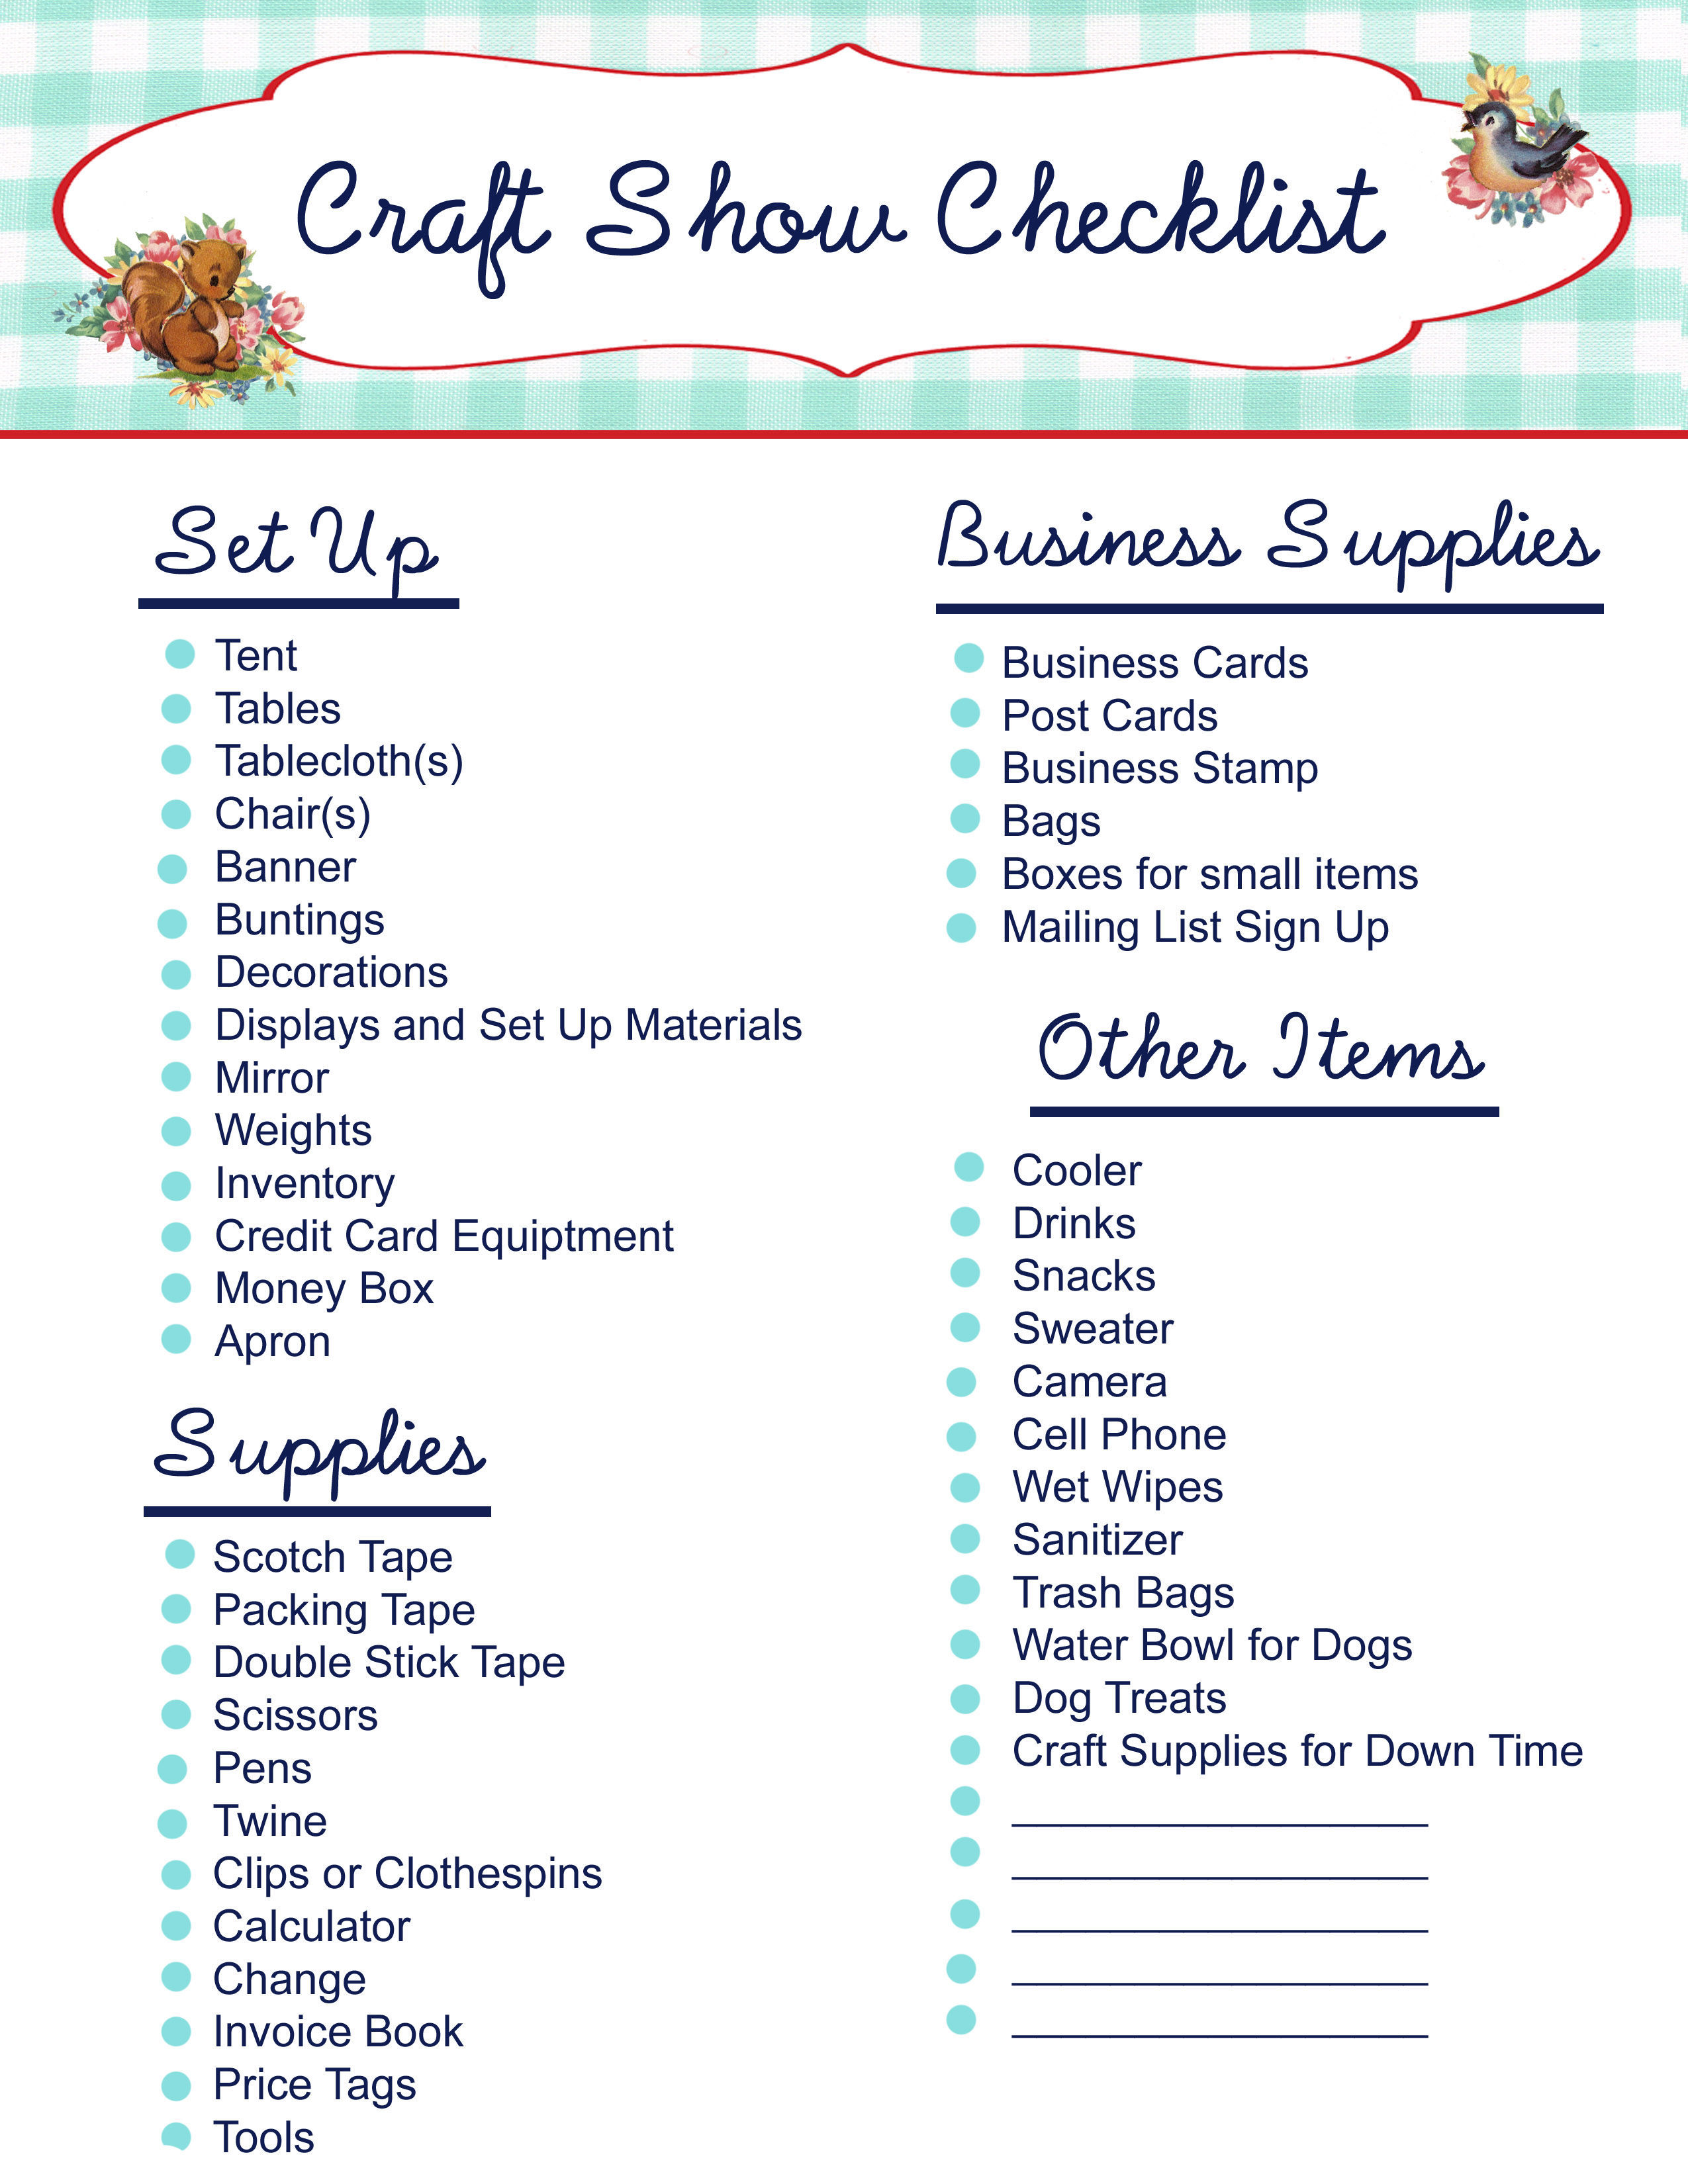 craft show checklist pictures  photos  and images for